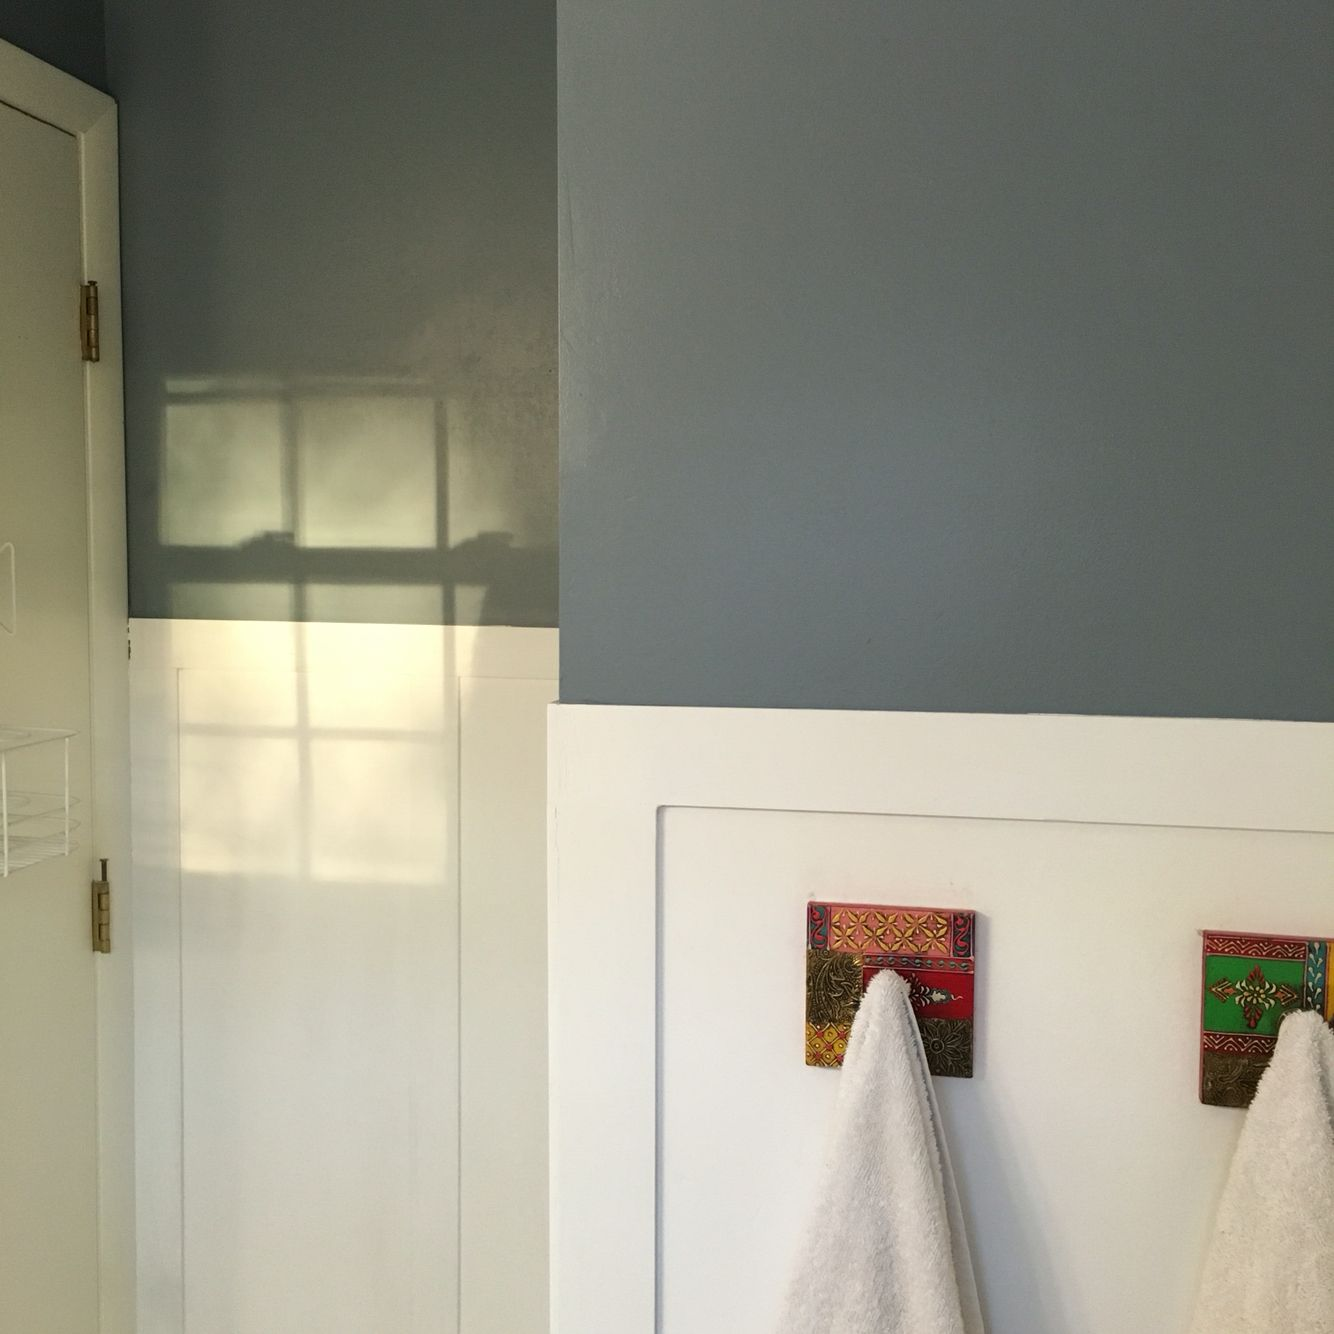 Hgtv by sherwin williams paint in nevermore grey for Sherwin and williams paint